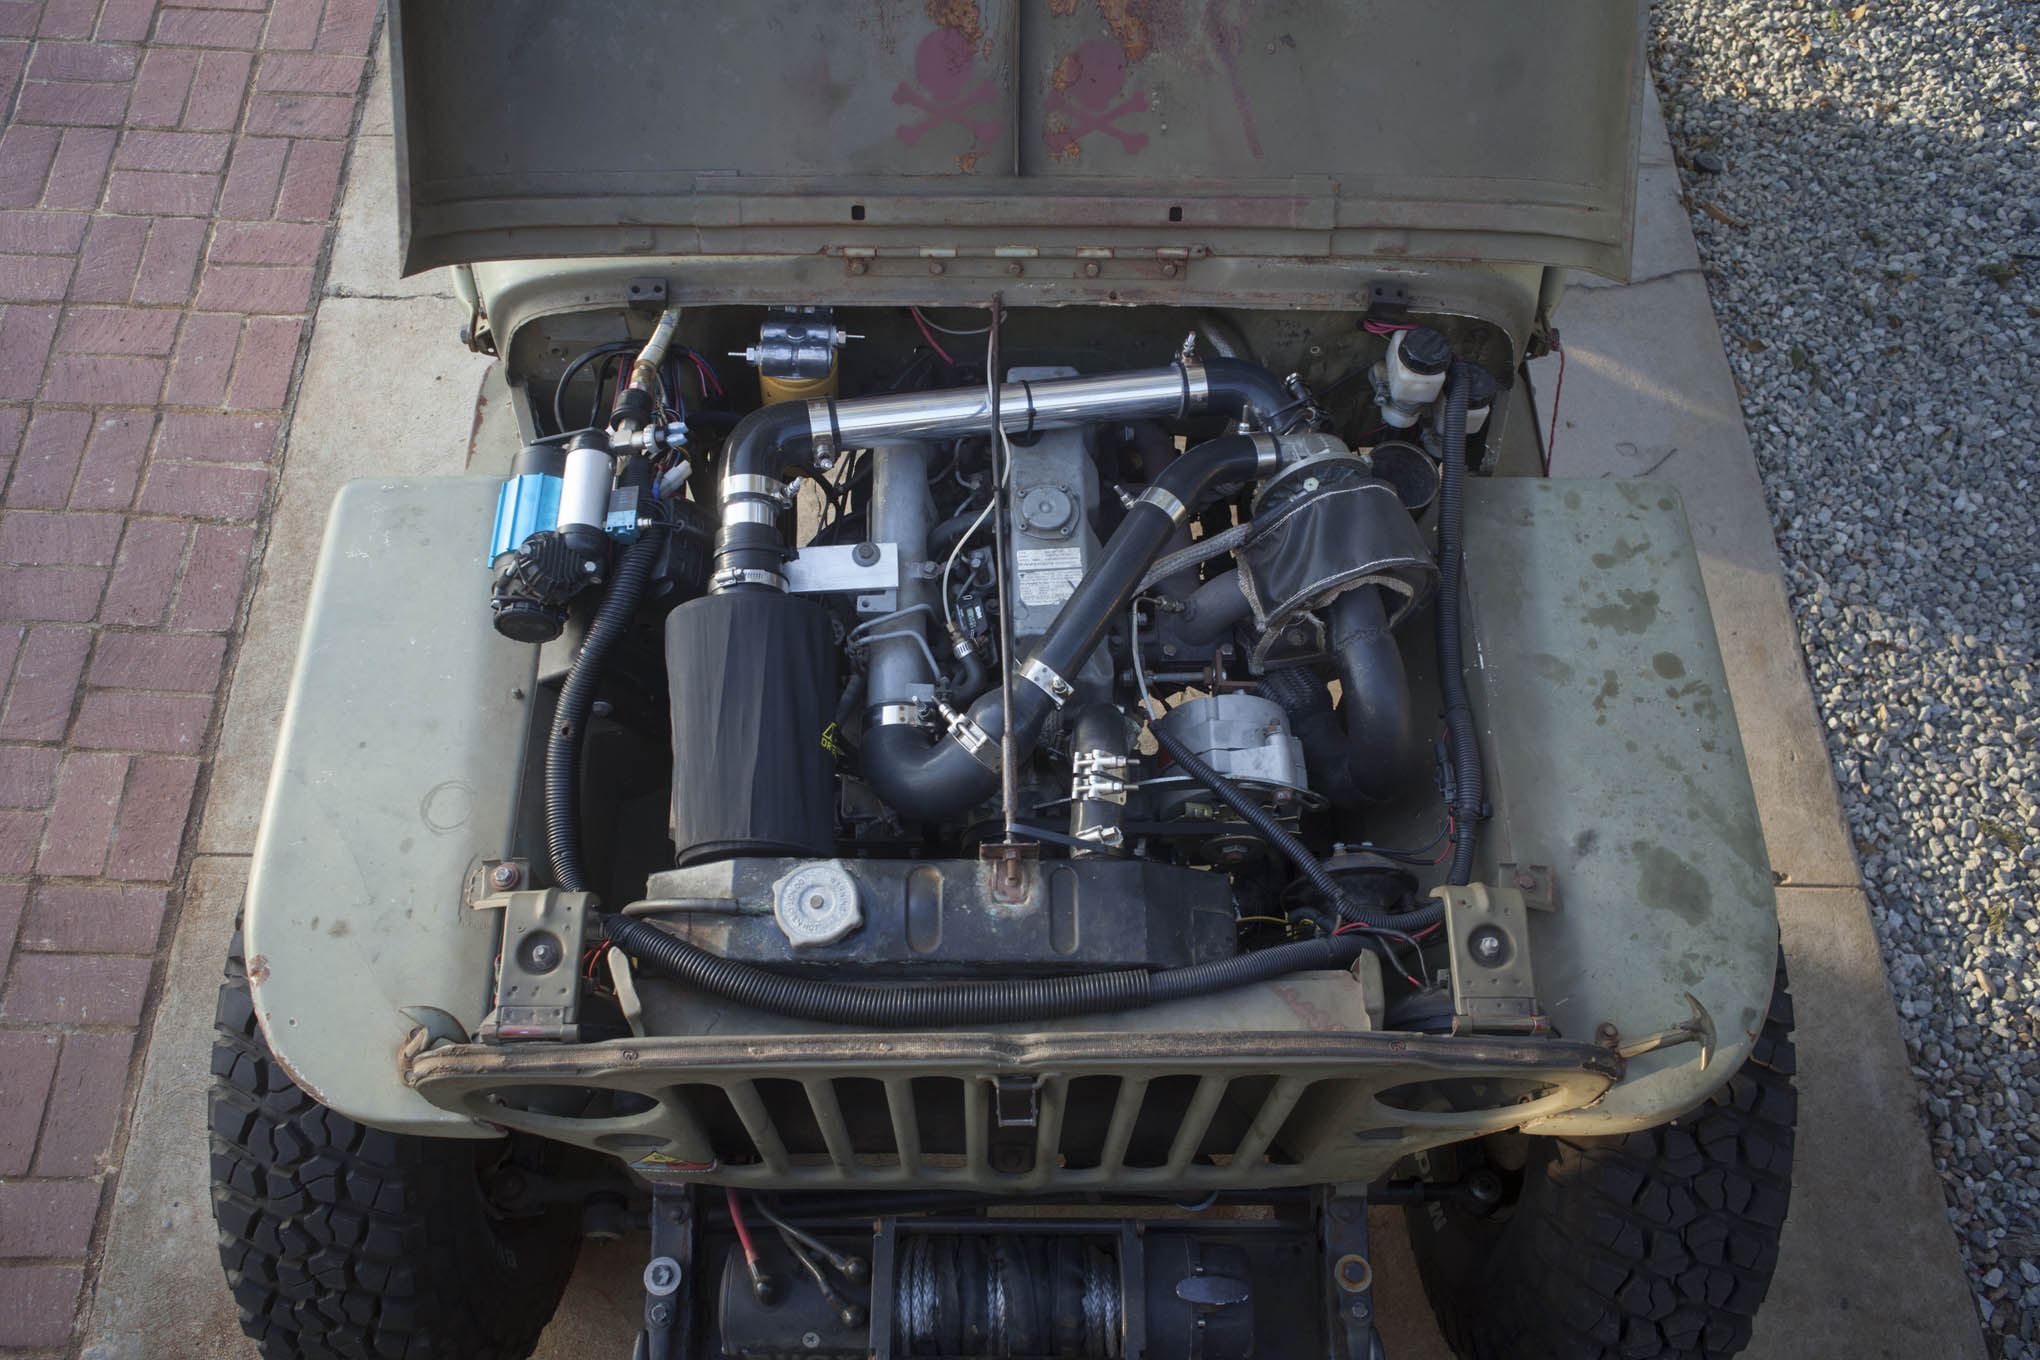 The Kubota 2.2L diesel was squeezed into the engine compartment, with the help of some motor mounts and a T-98 bellhousing adapter plate from Overland Diesel.